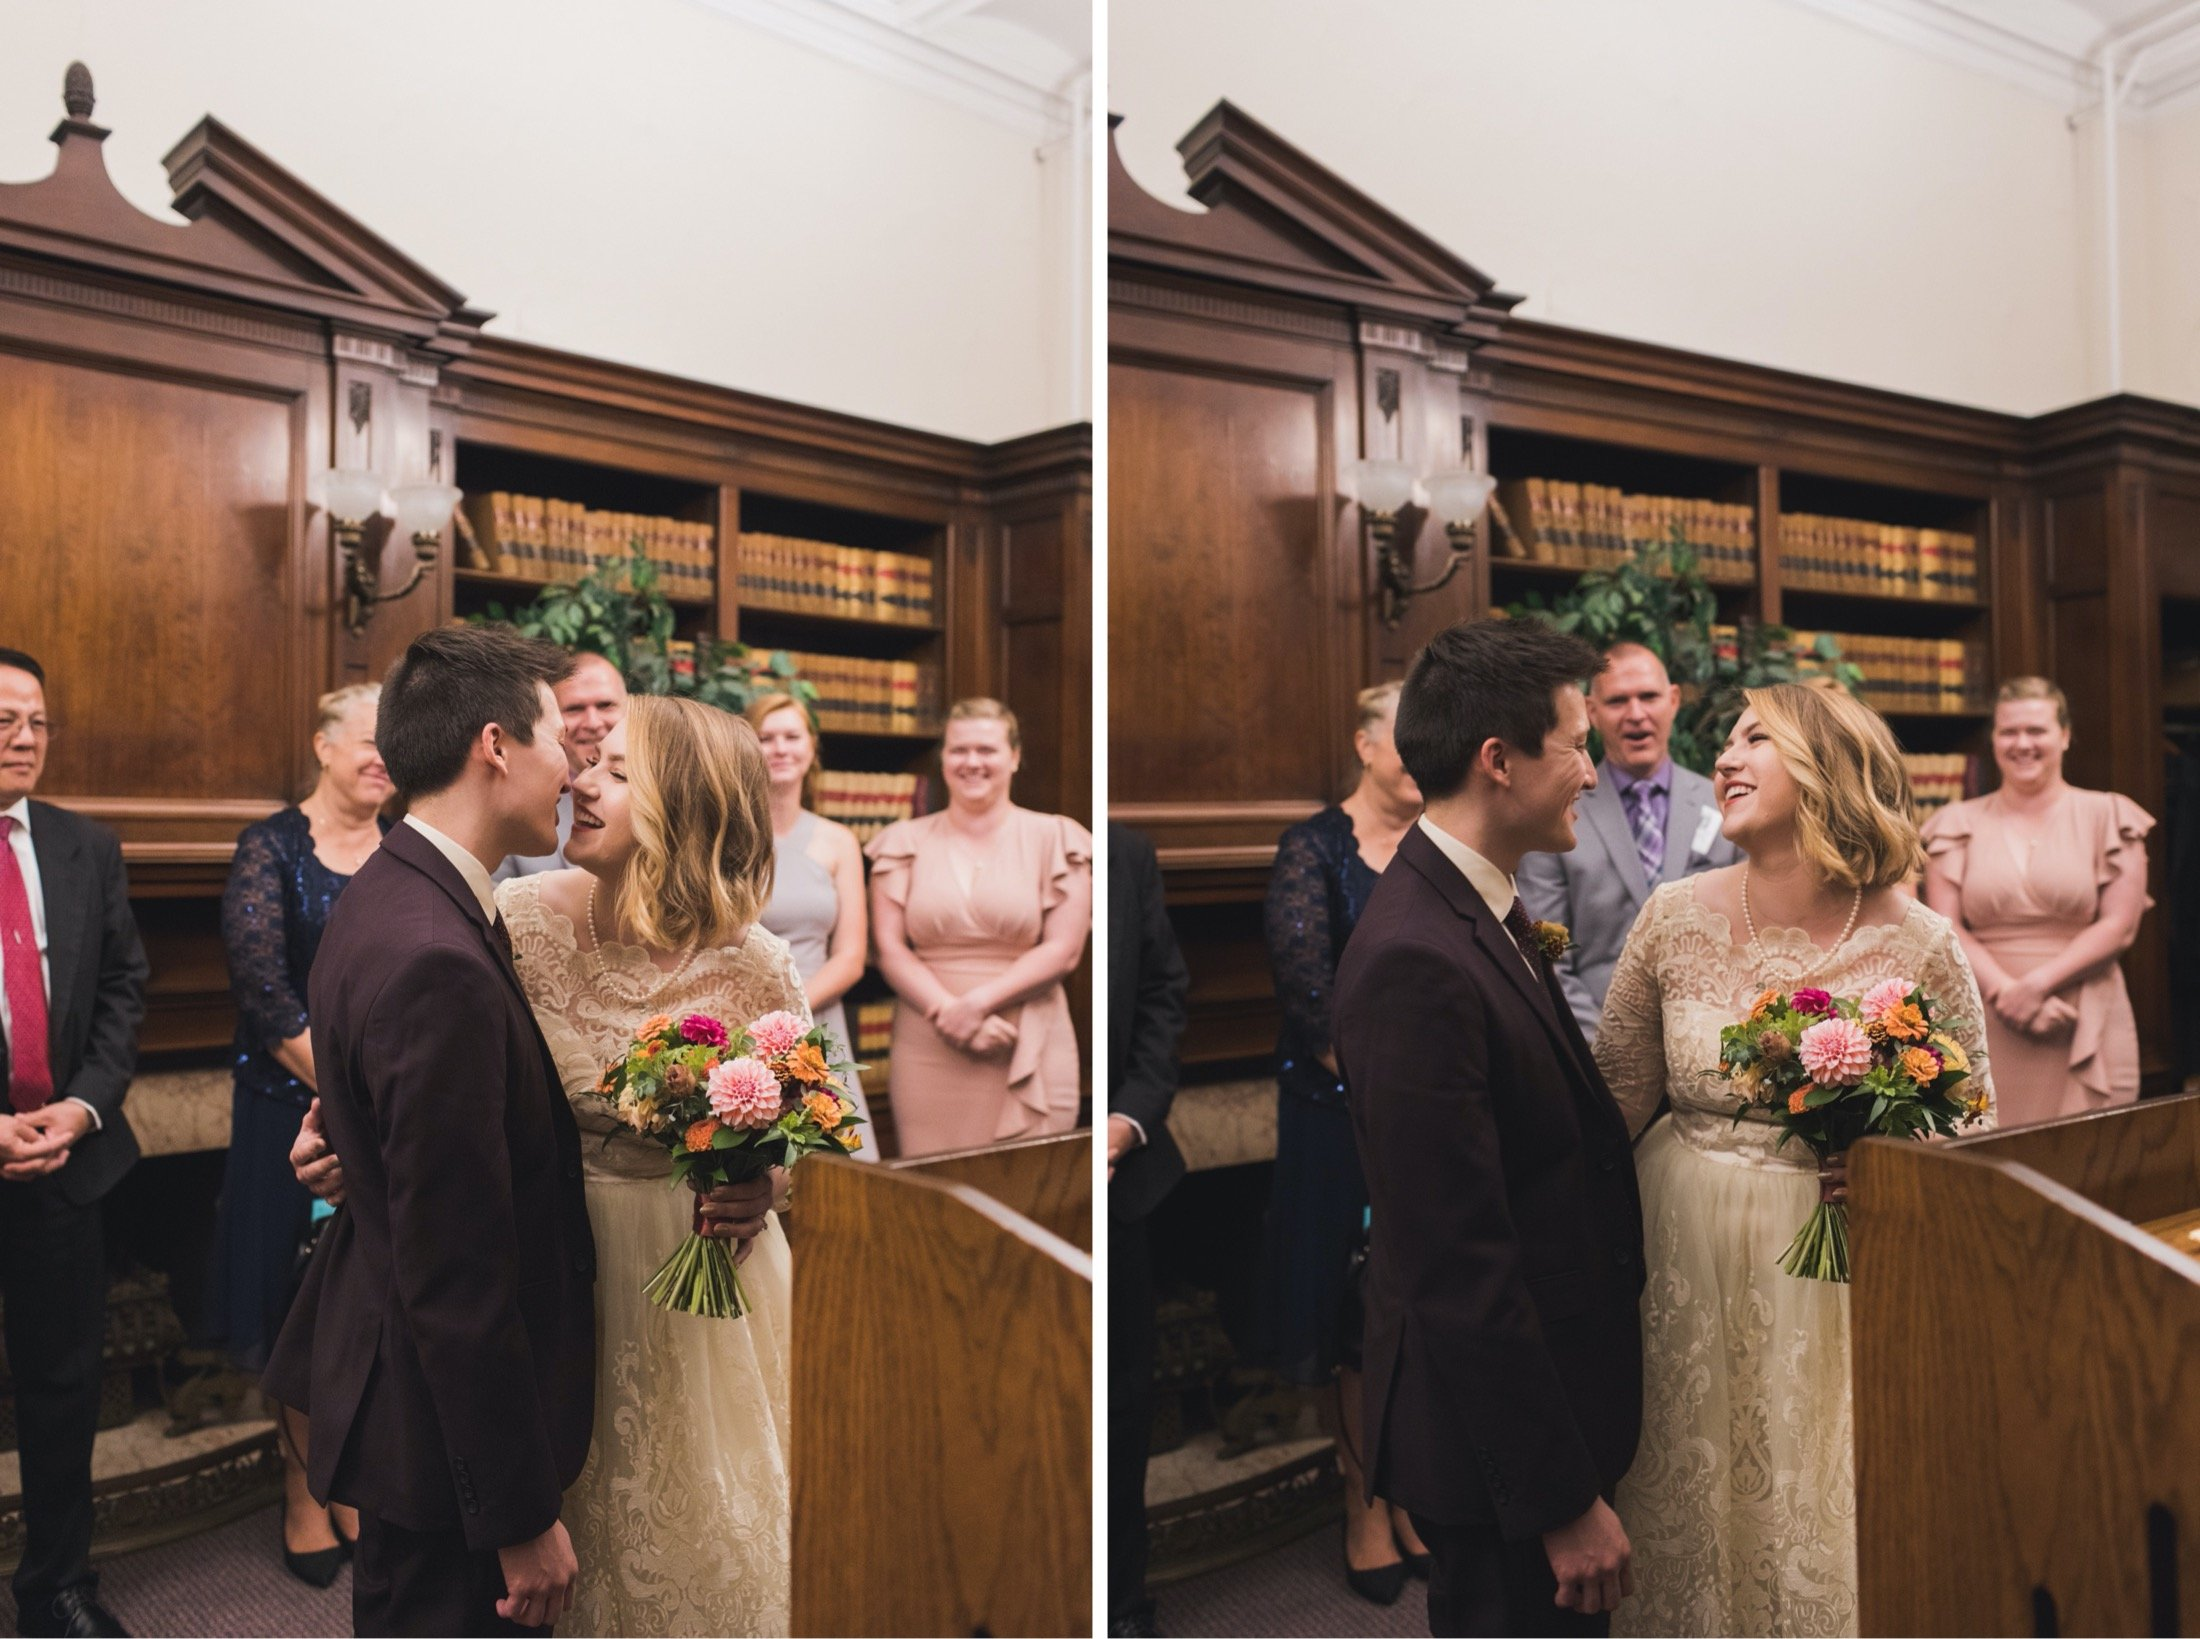 City Hall, elopement, Philadelphia, microwedding